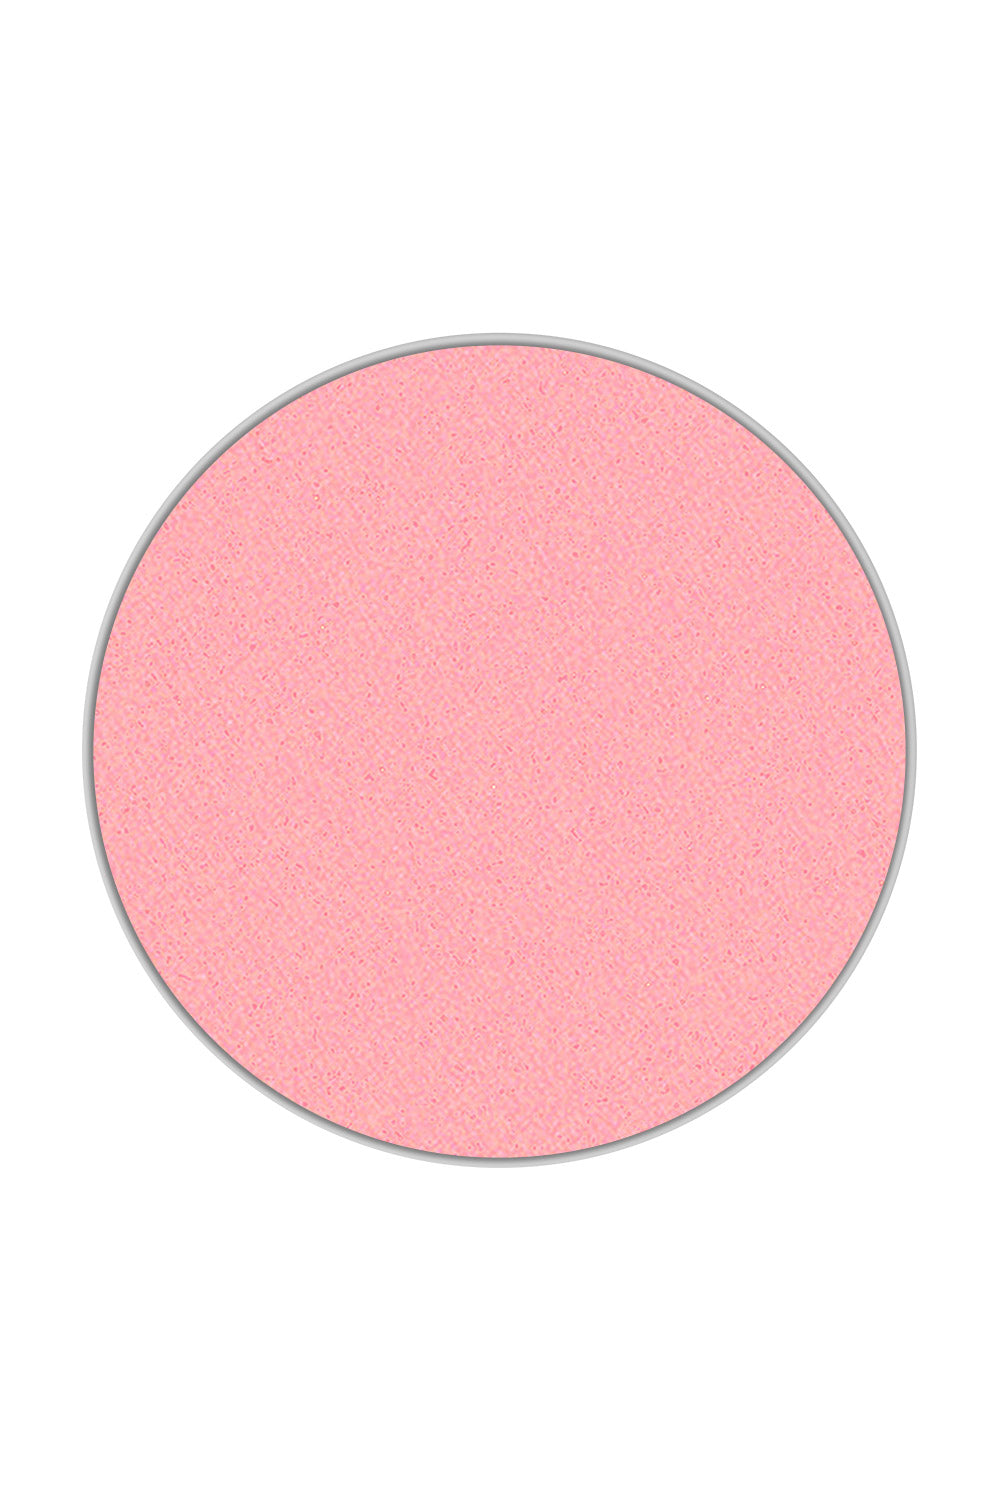 Type 2 Blush Pan - Hush Pink